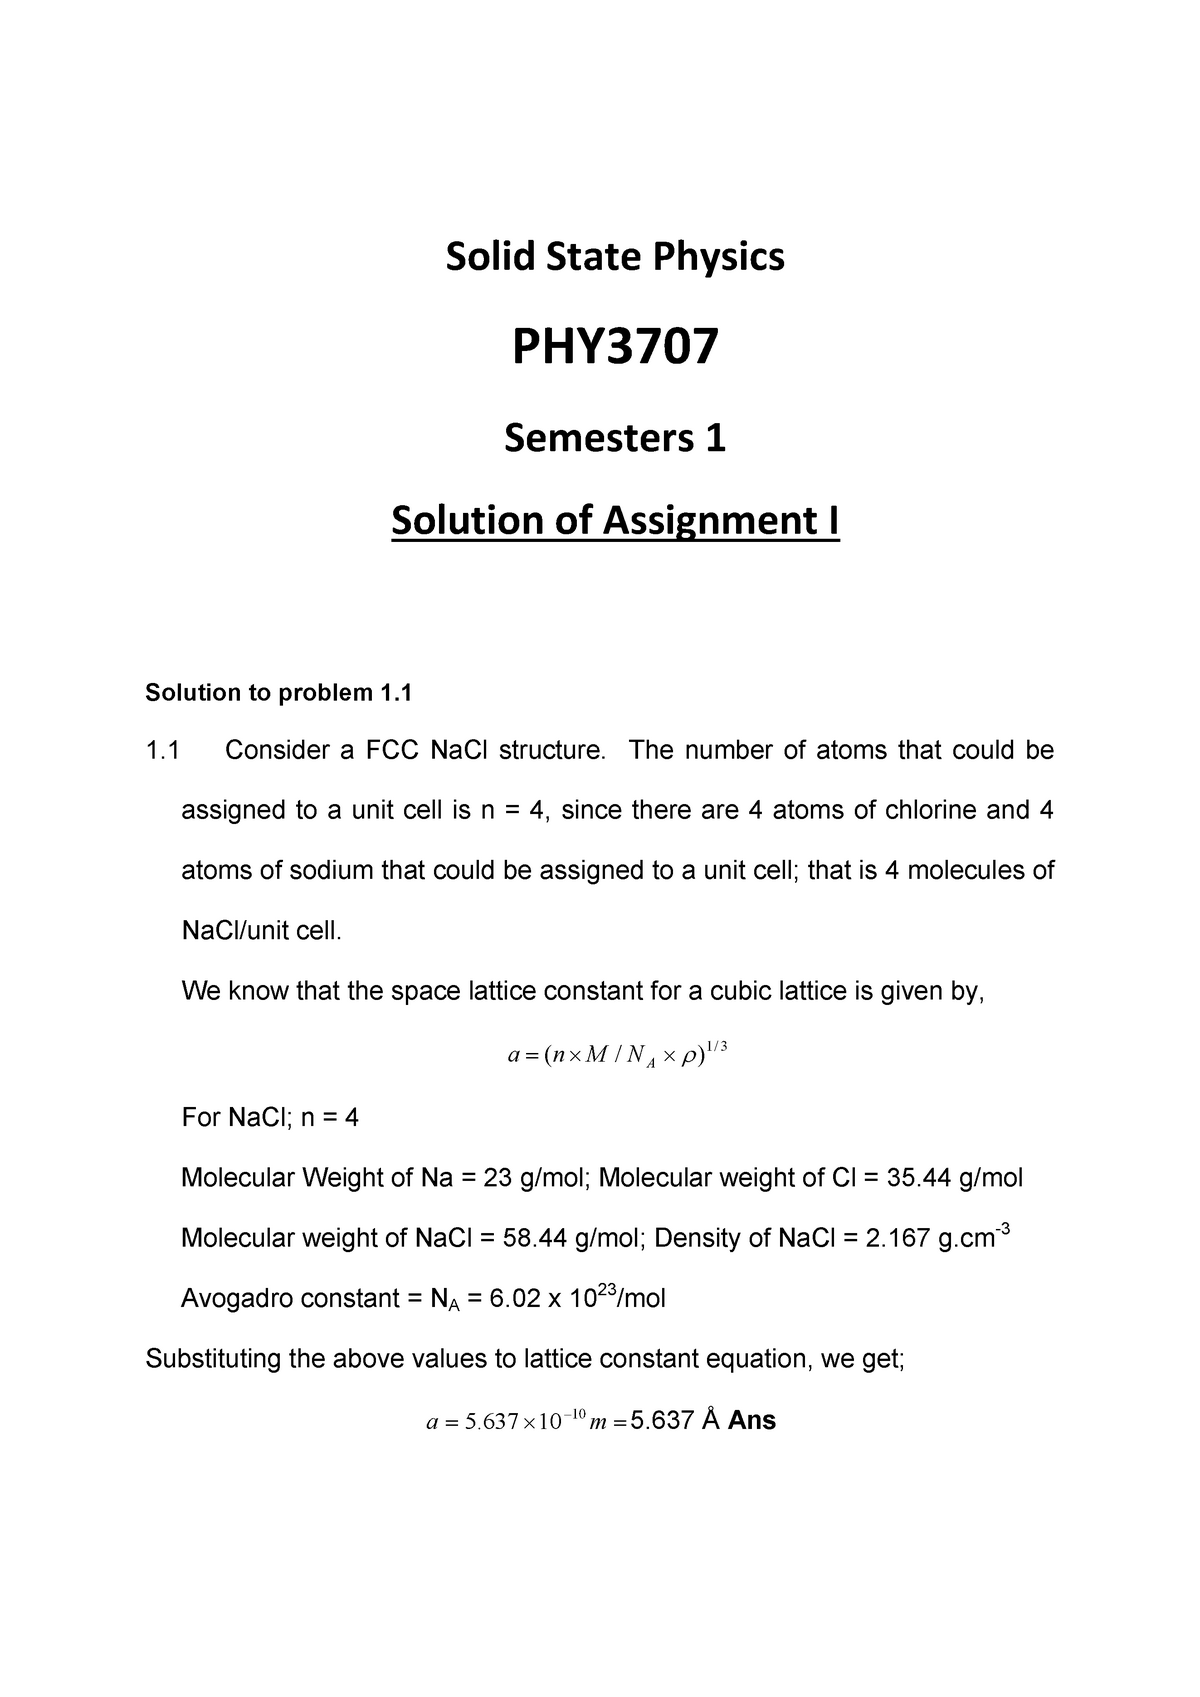 SEM+I+-+Solution+686390+ Assignment+I - Solid State Physics